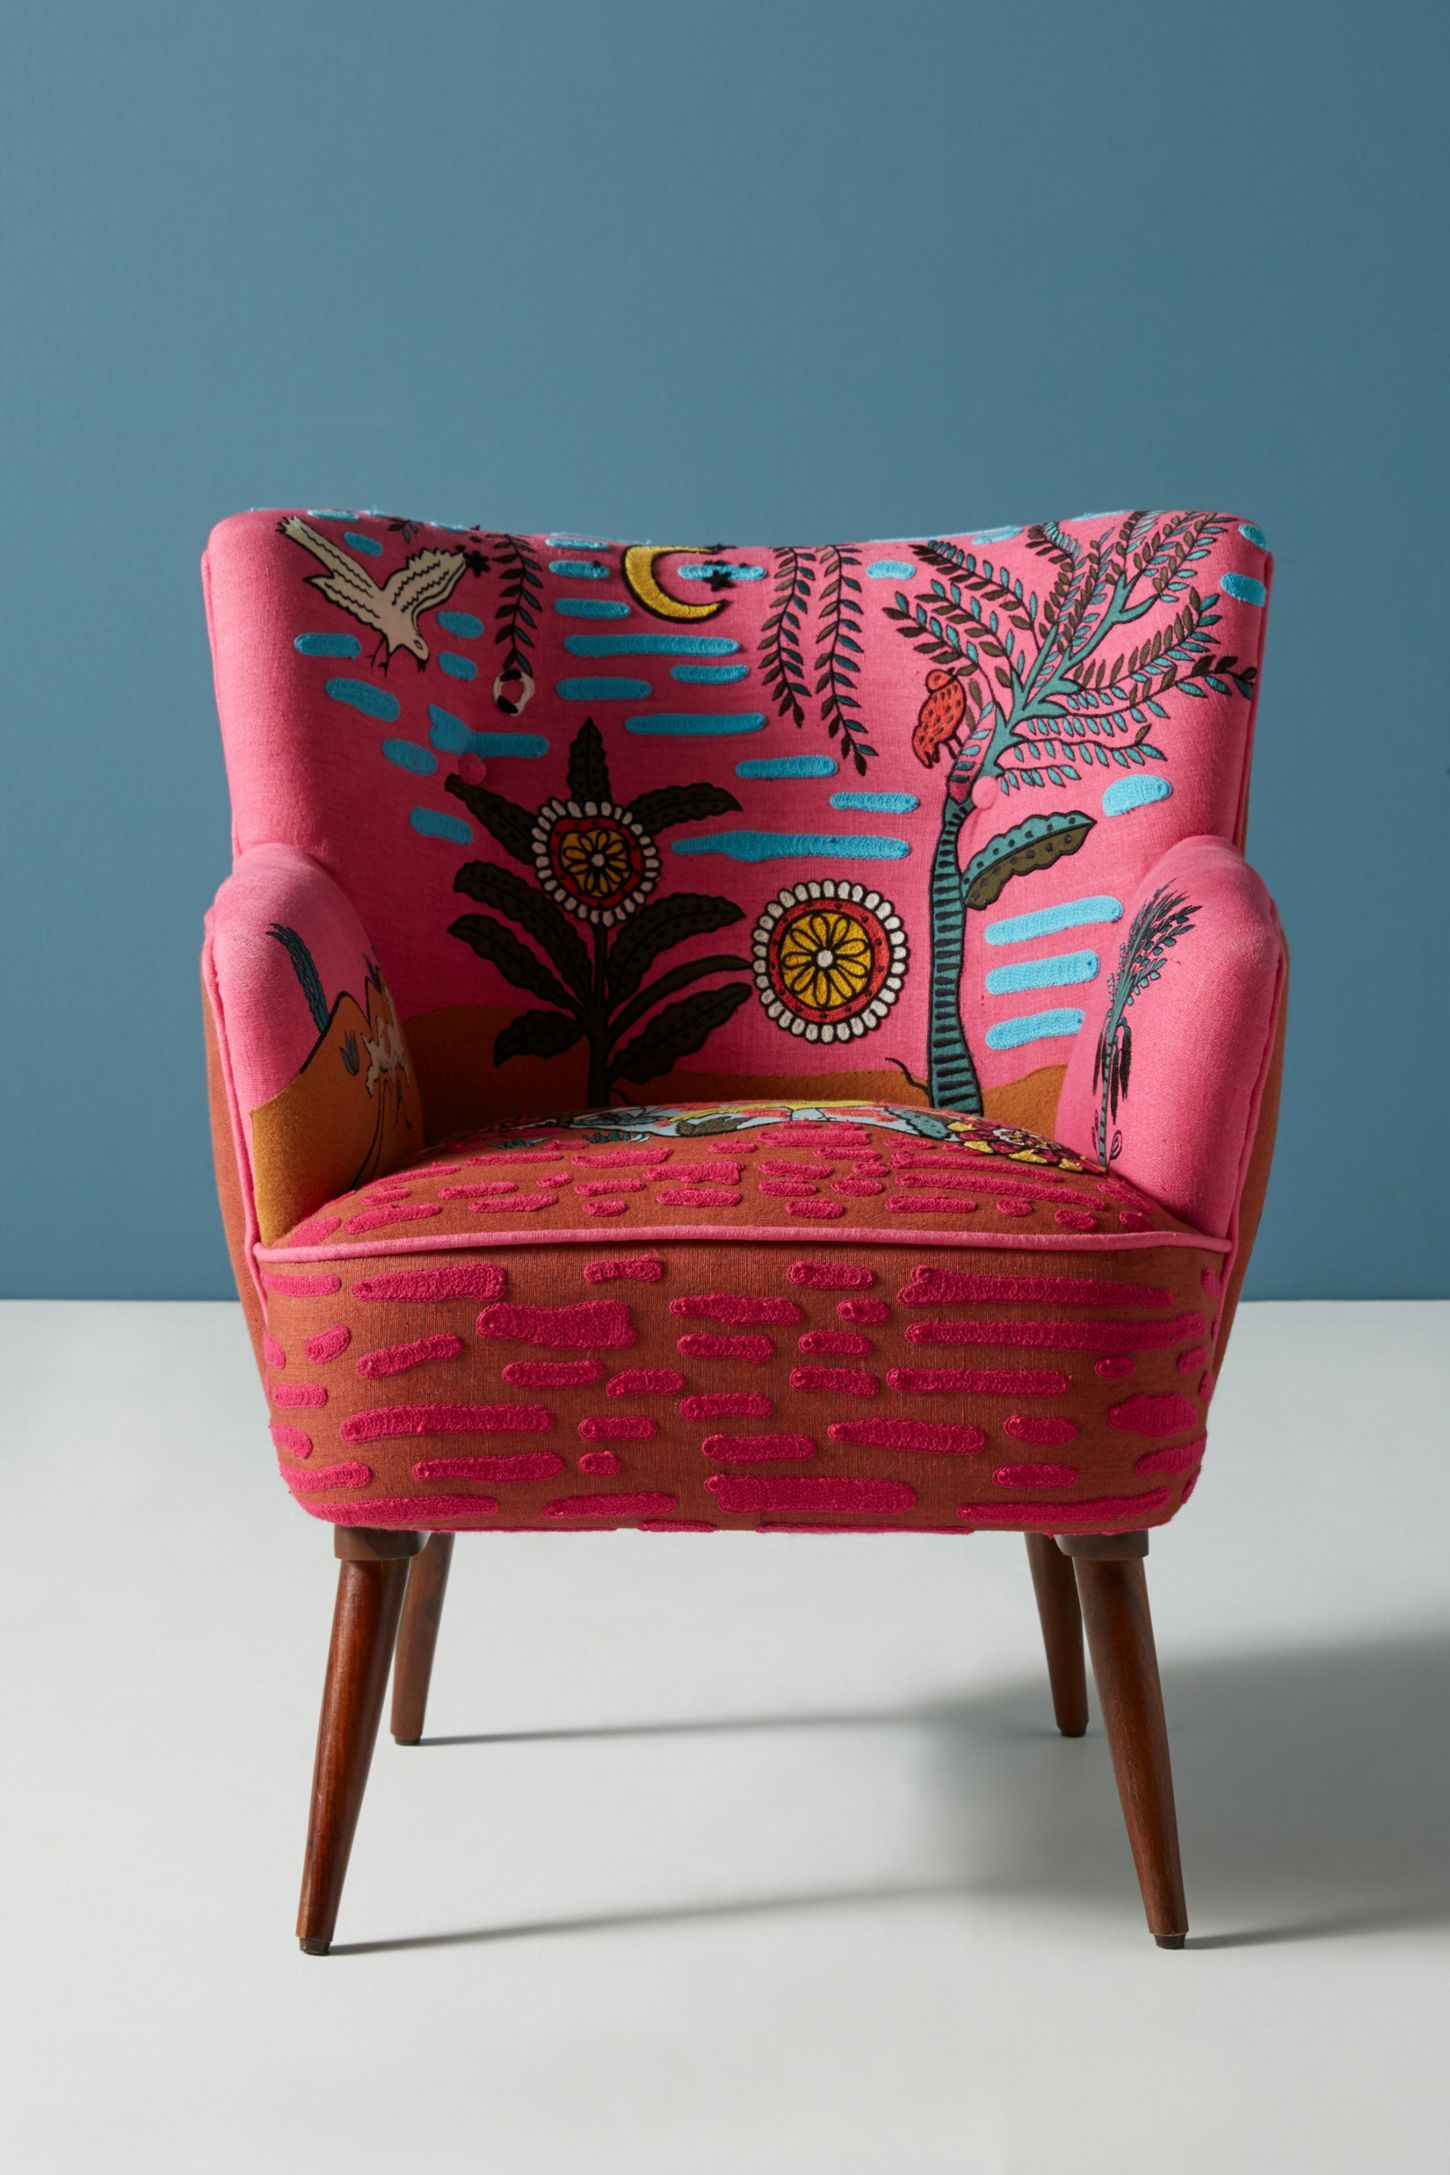 Imagined World Petite Accent Chair By Anthropologie In